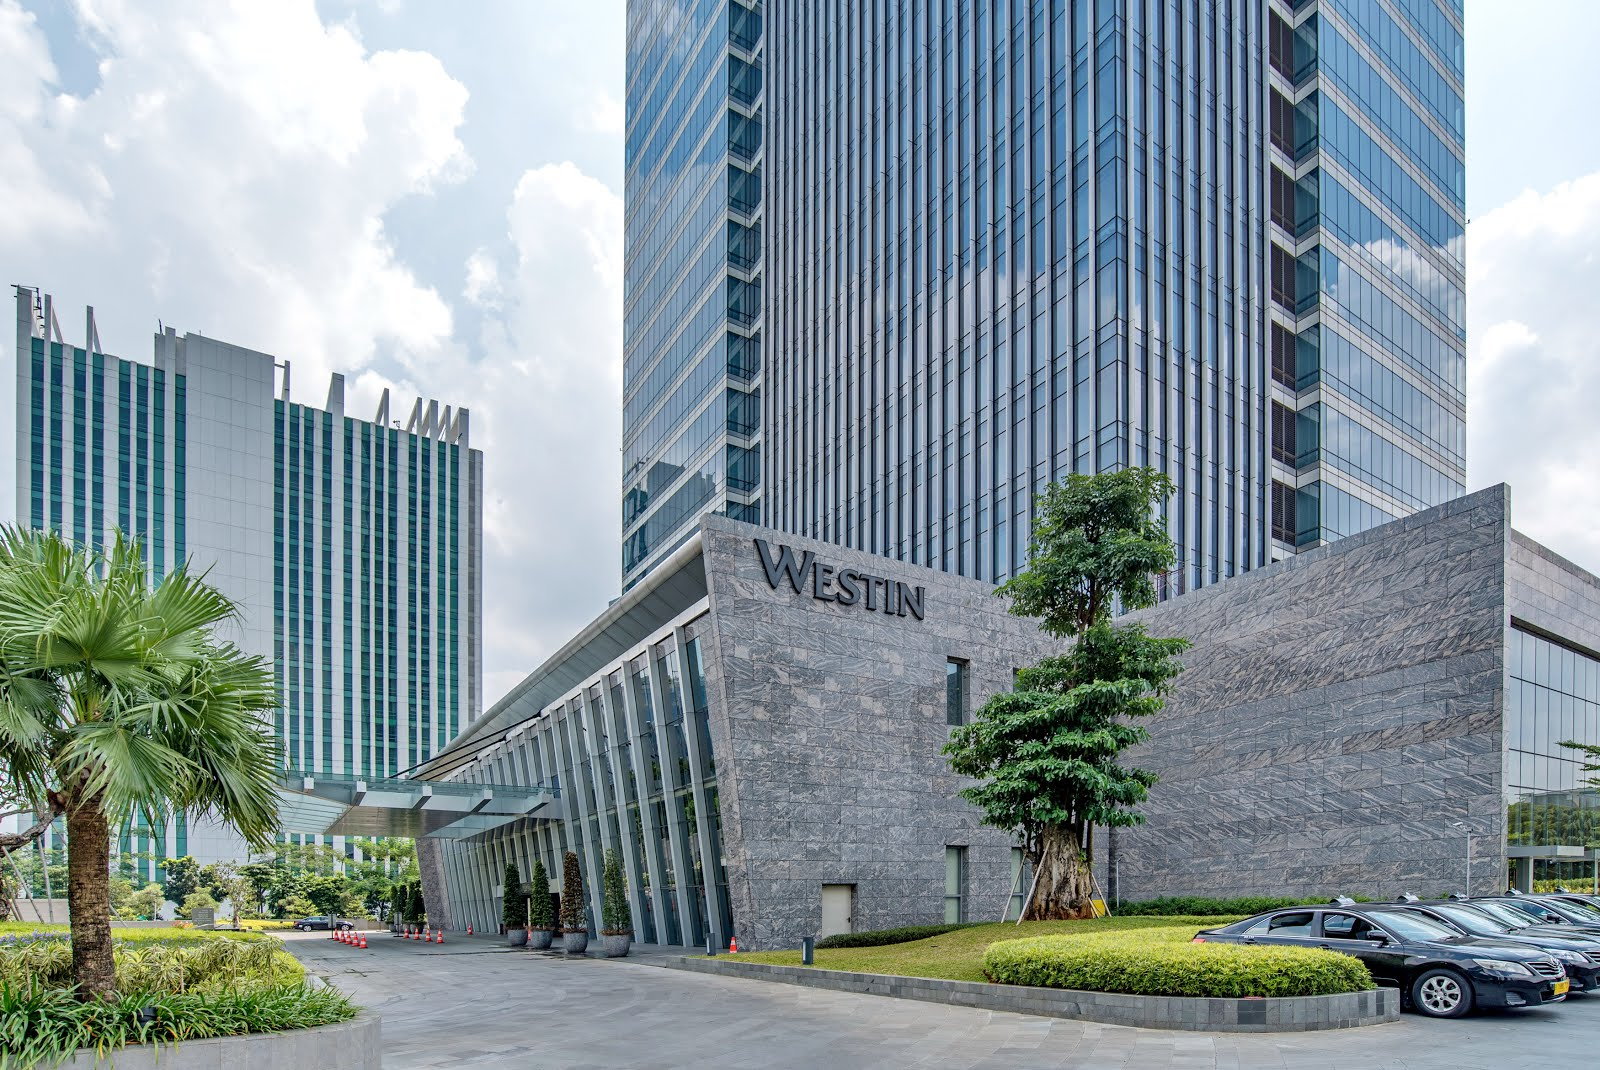 Hotel Review The Westin Jakarta Flavorful Escape Travel Food Blogger Based In Indonesia